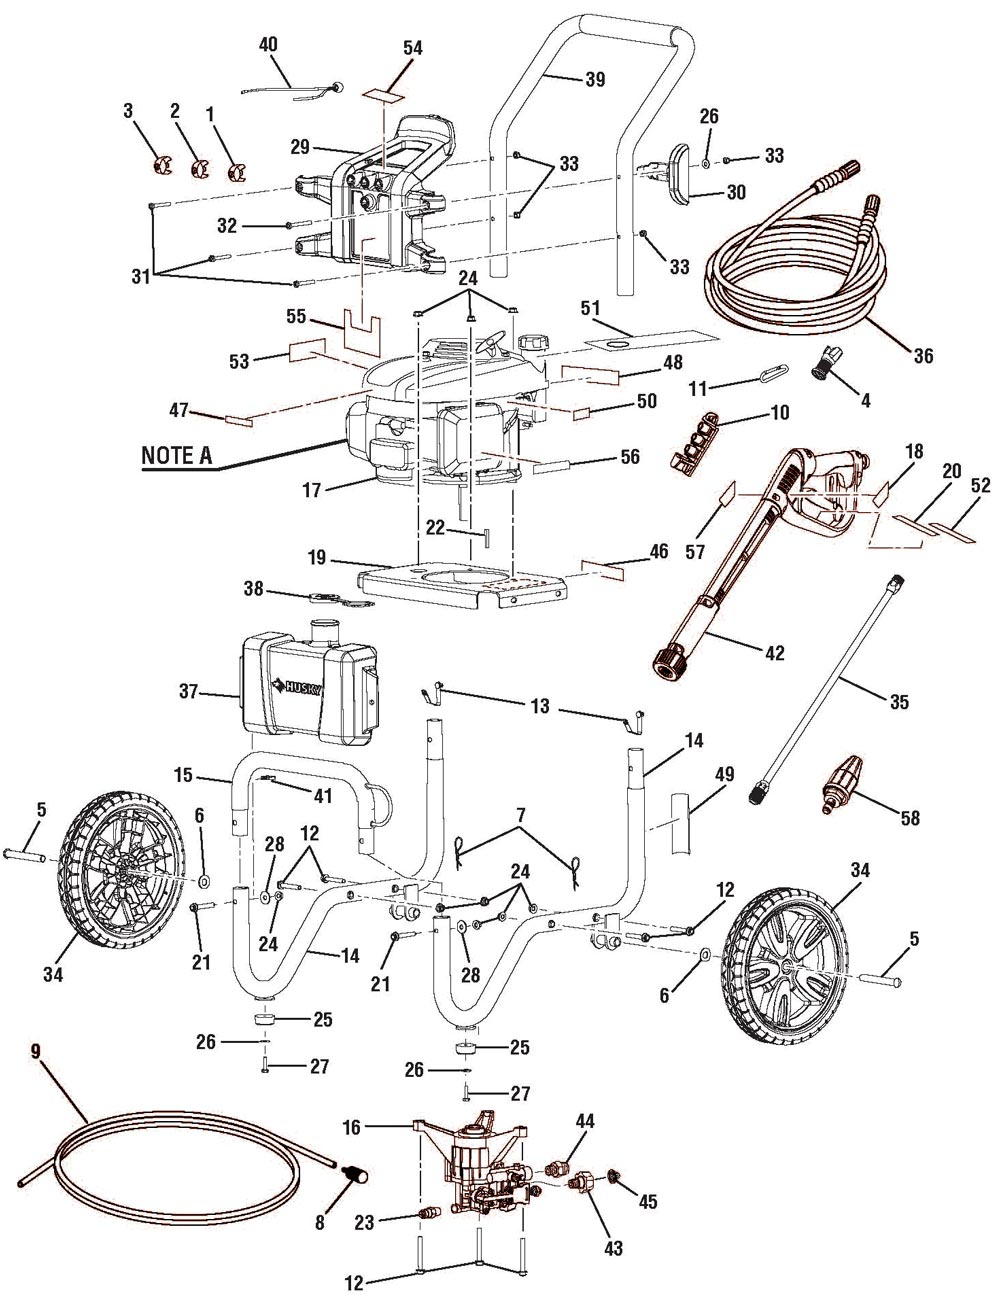 HU80432_parts husky hu80432, hu80432a husky 5000 watt generator wiring diagram at readyjetset.co